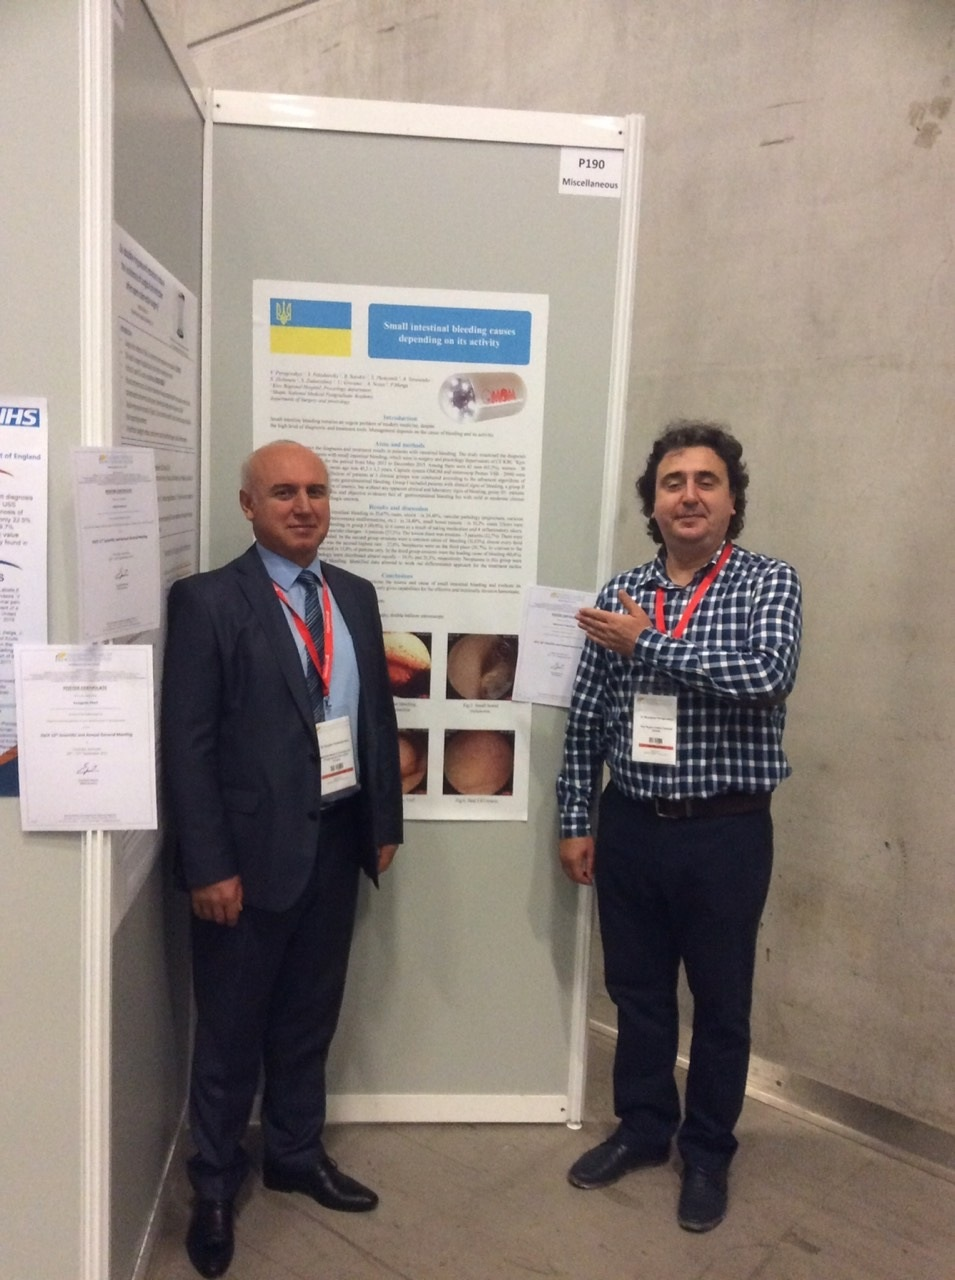 XII European Society of Coloproctology meeting in Berlin (ESCP2017)